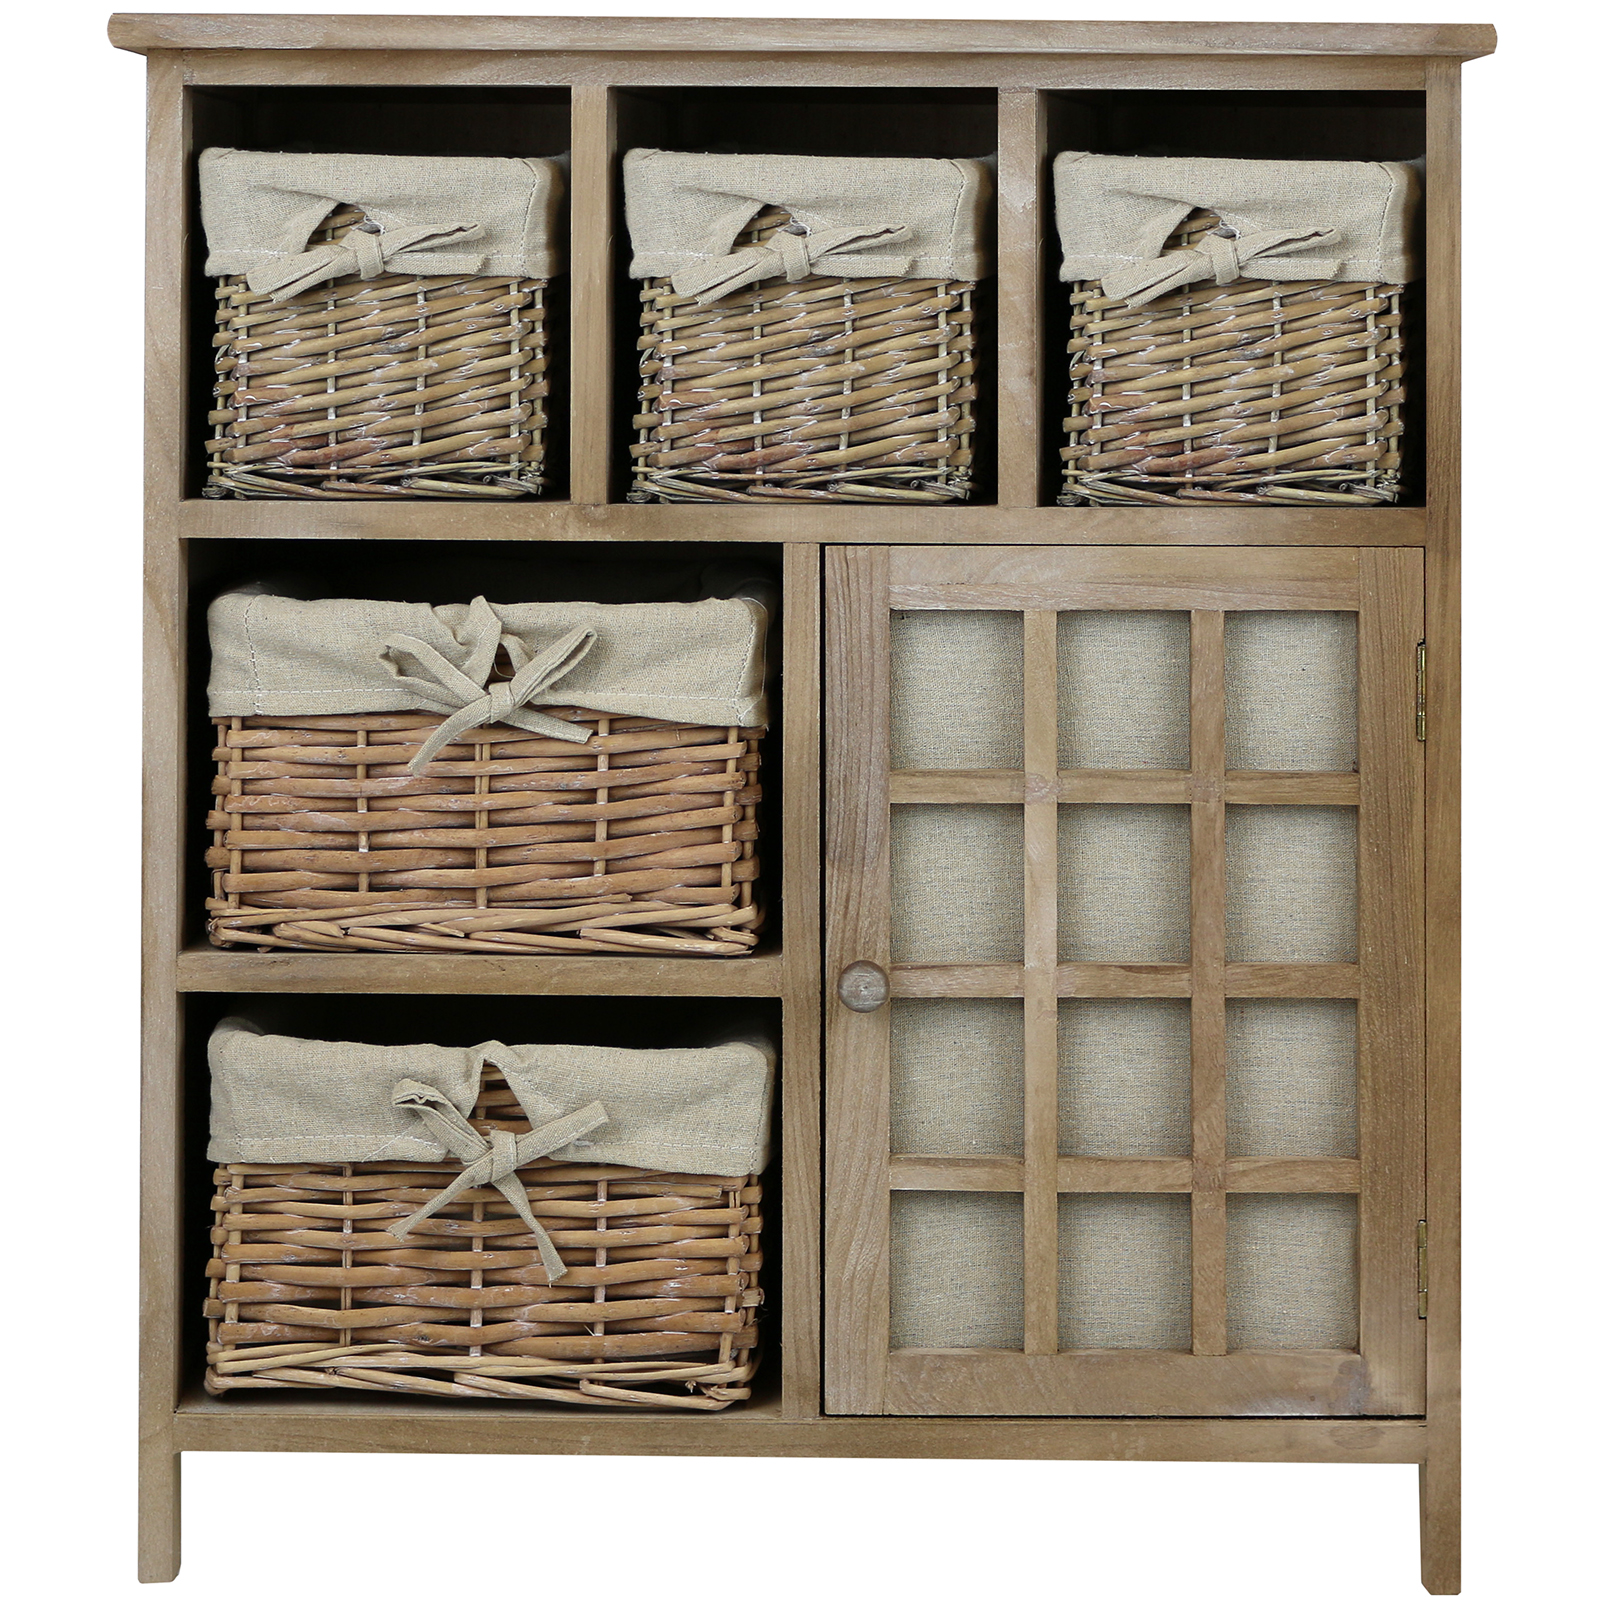 Delicieux Sentinel HARTLEYS BROWN 5 DRAWER WICKER BASKET STORAGE UNIT SHABBY CHIC  DRESSER/SIDEBOARD